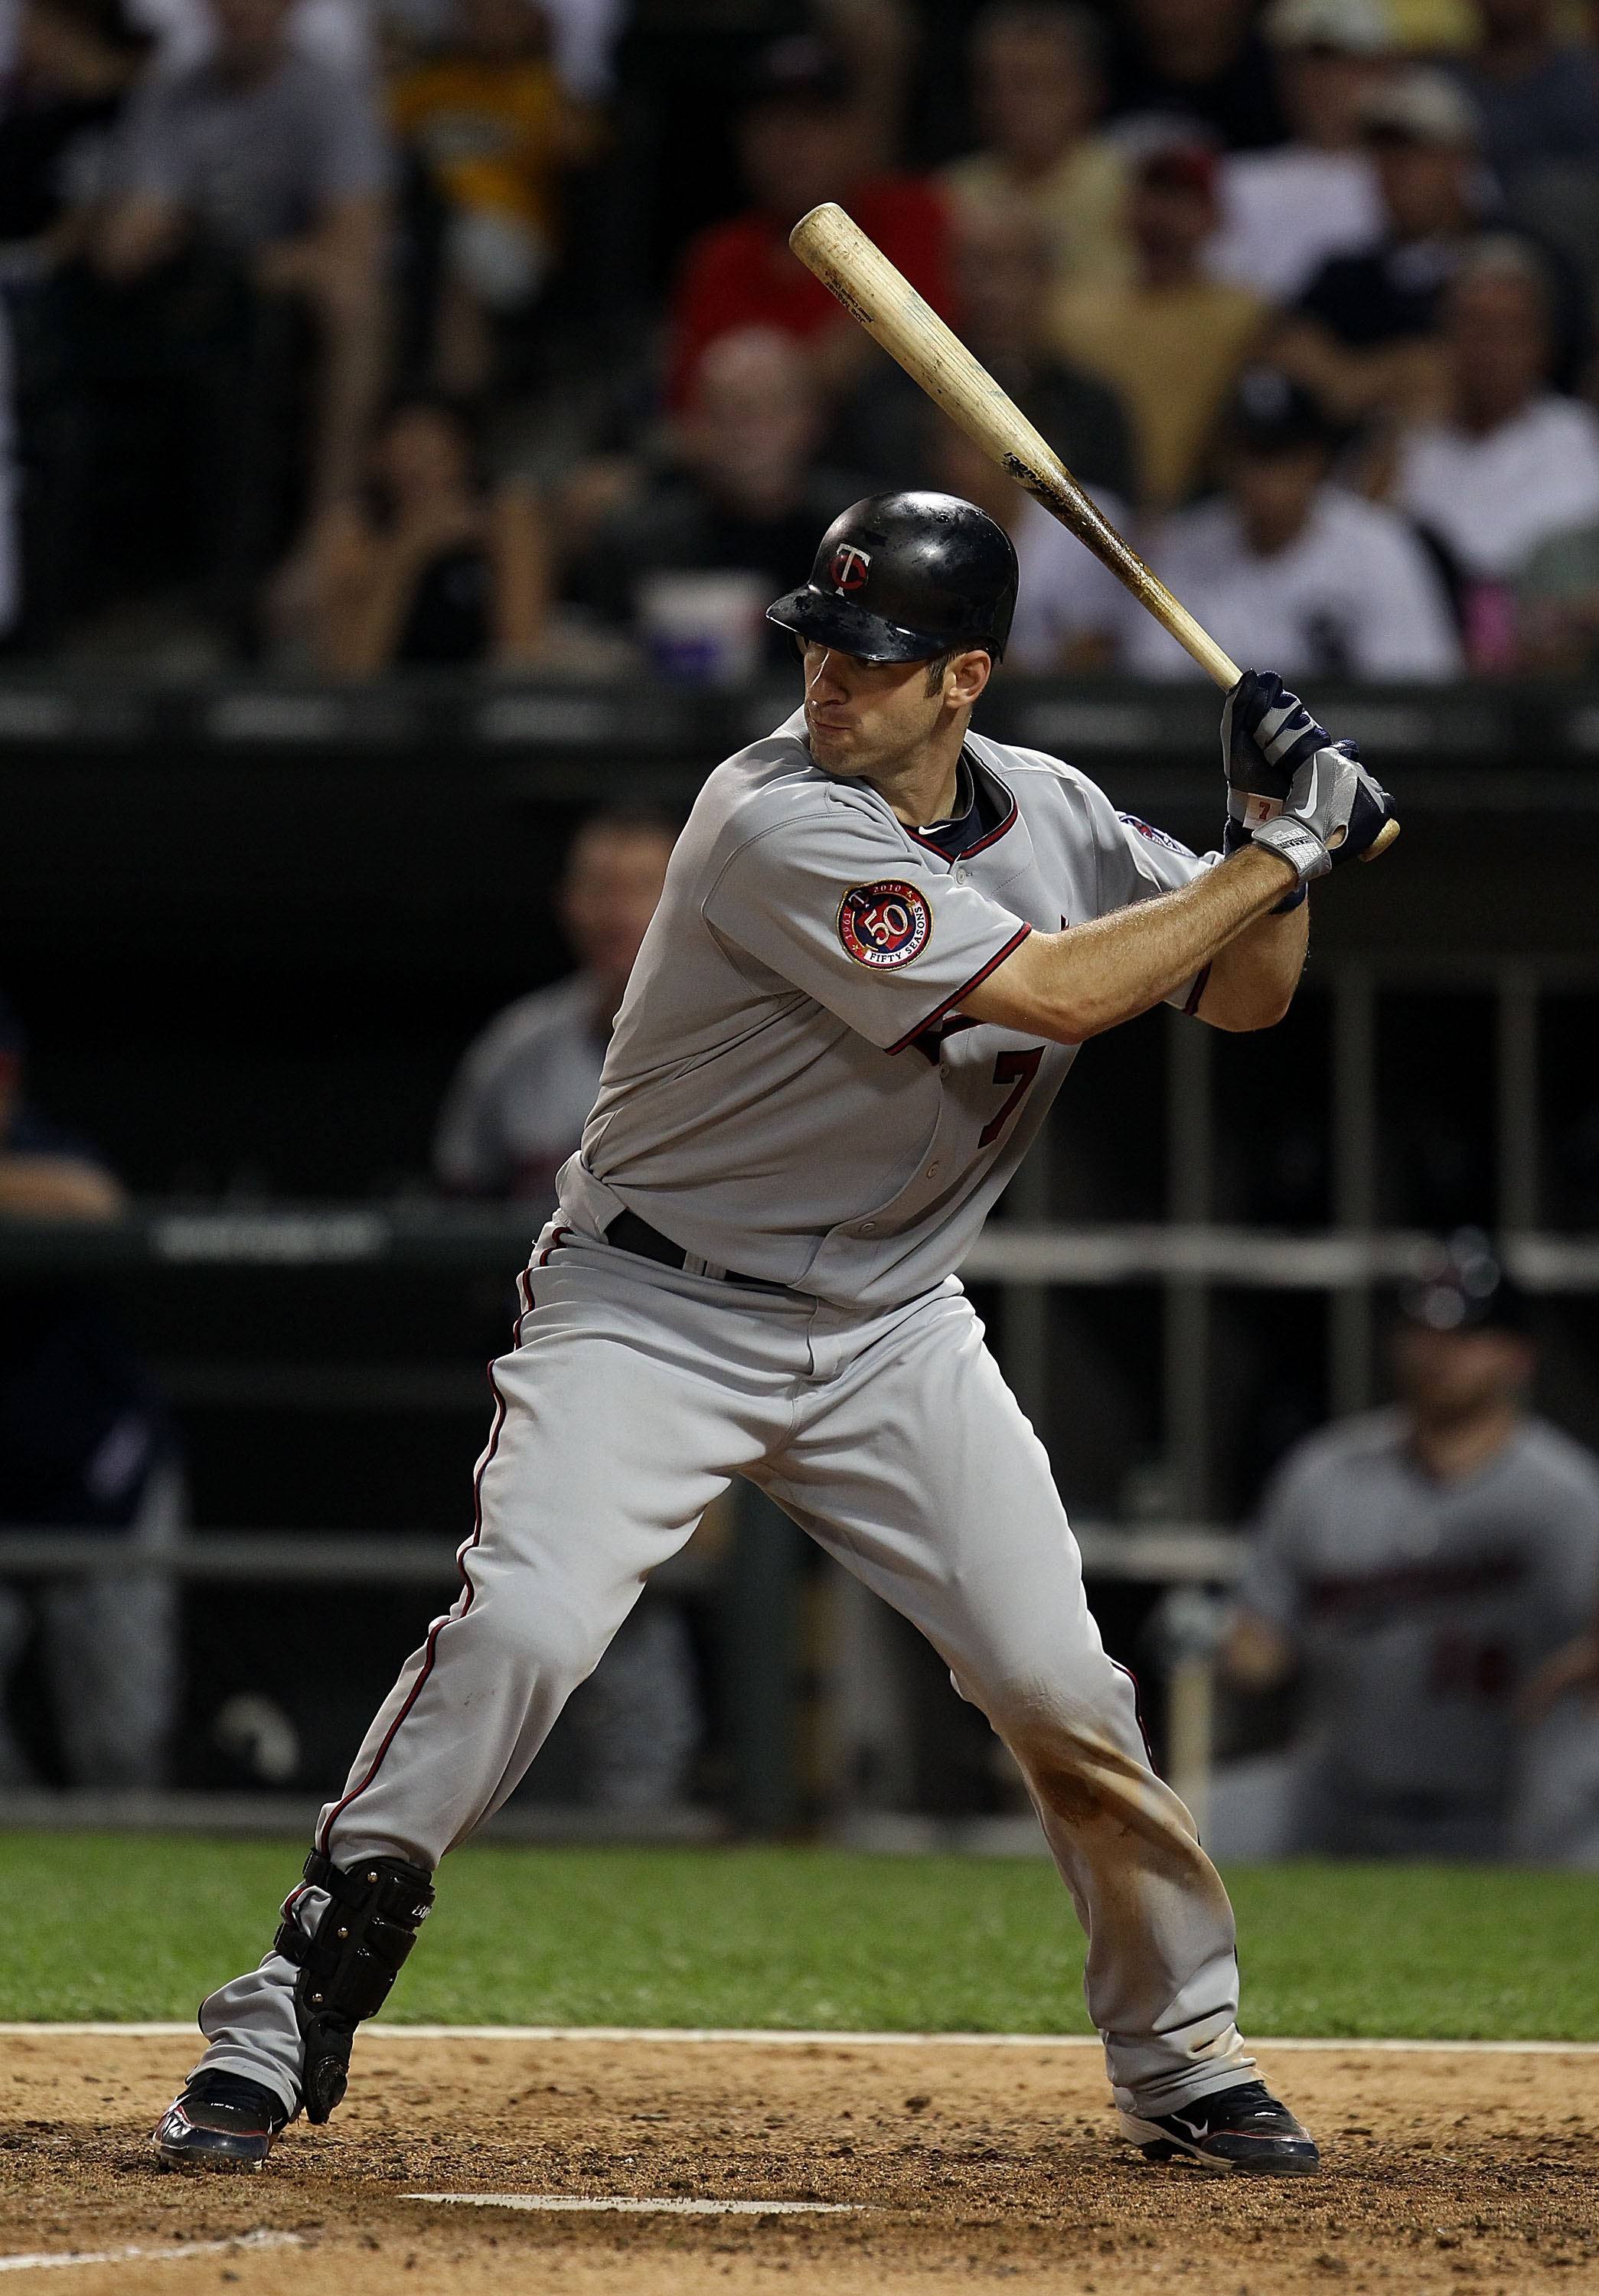 CHICAGO - AUGUST 10: Joe Mauer #7 of the Minnesota Twins prepares to bat against the Chicago White Sox at U.S. Cellular Field on August 10, 2010 in Chicago, Illinois. The Twins defeated the White Sox 12-6. (Photo by Jonathan Daniel/Getty Images)